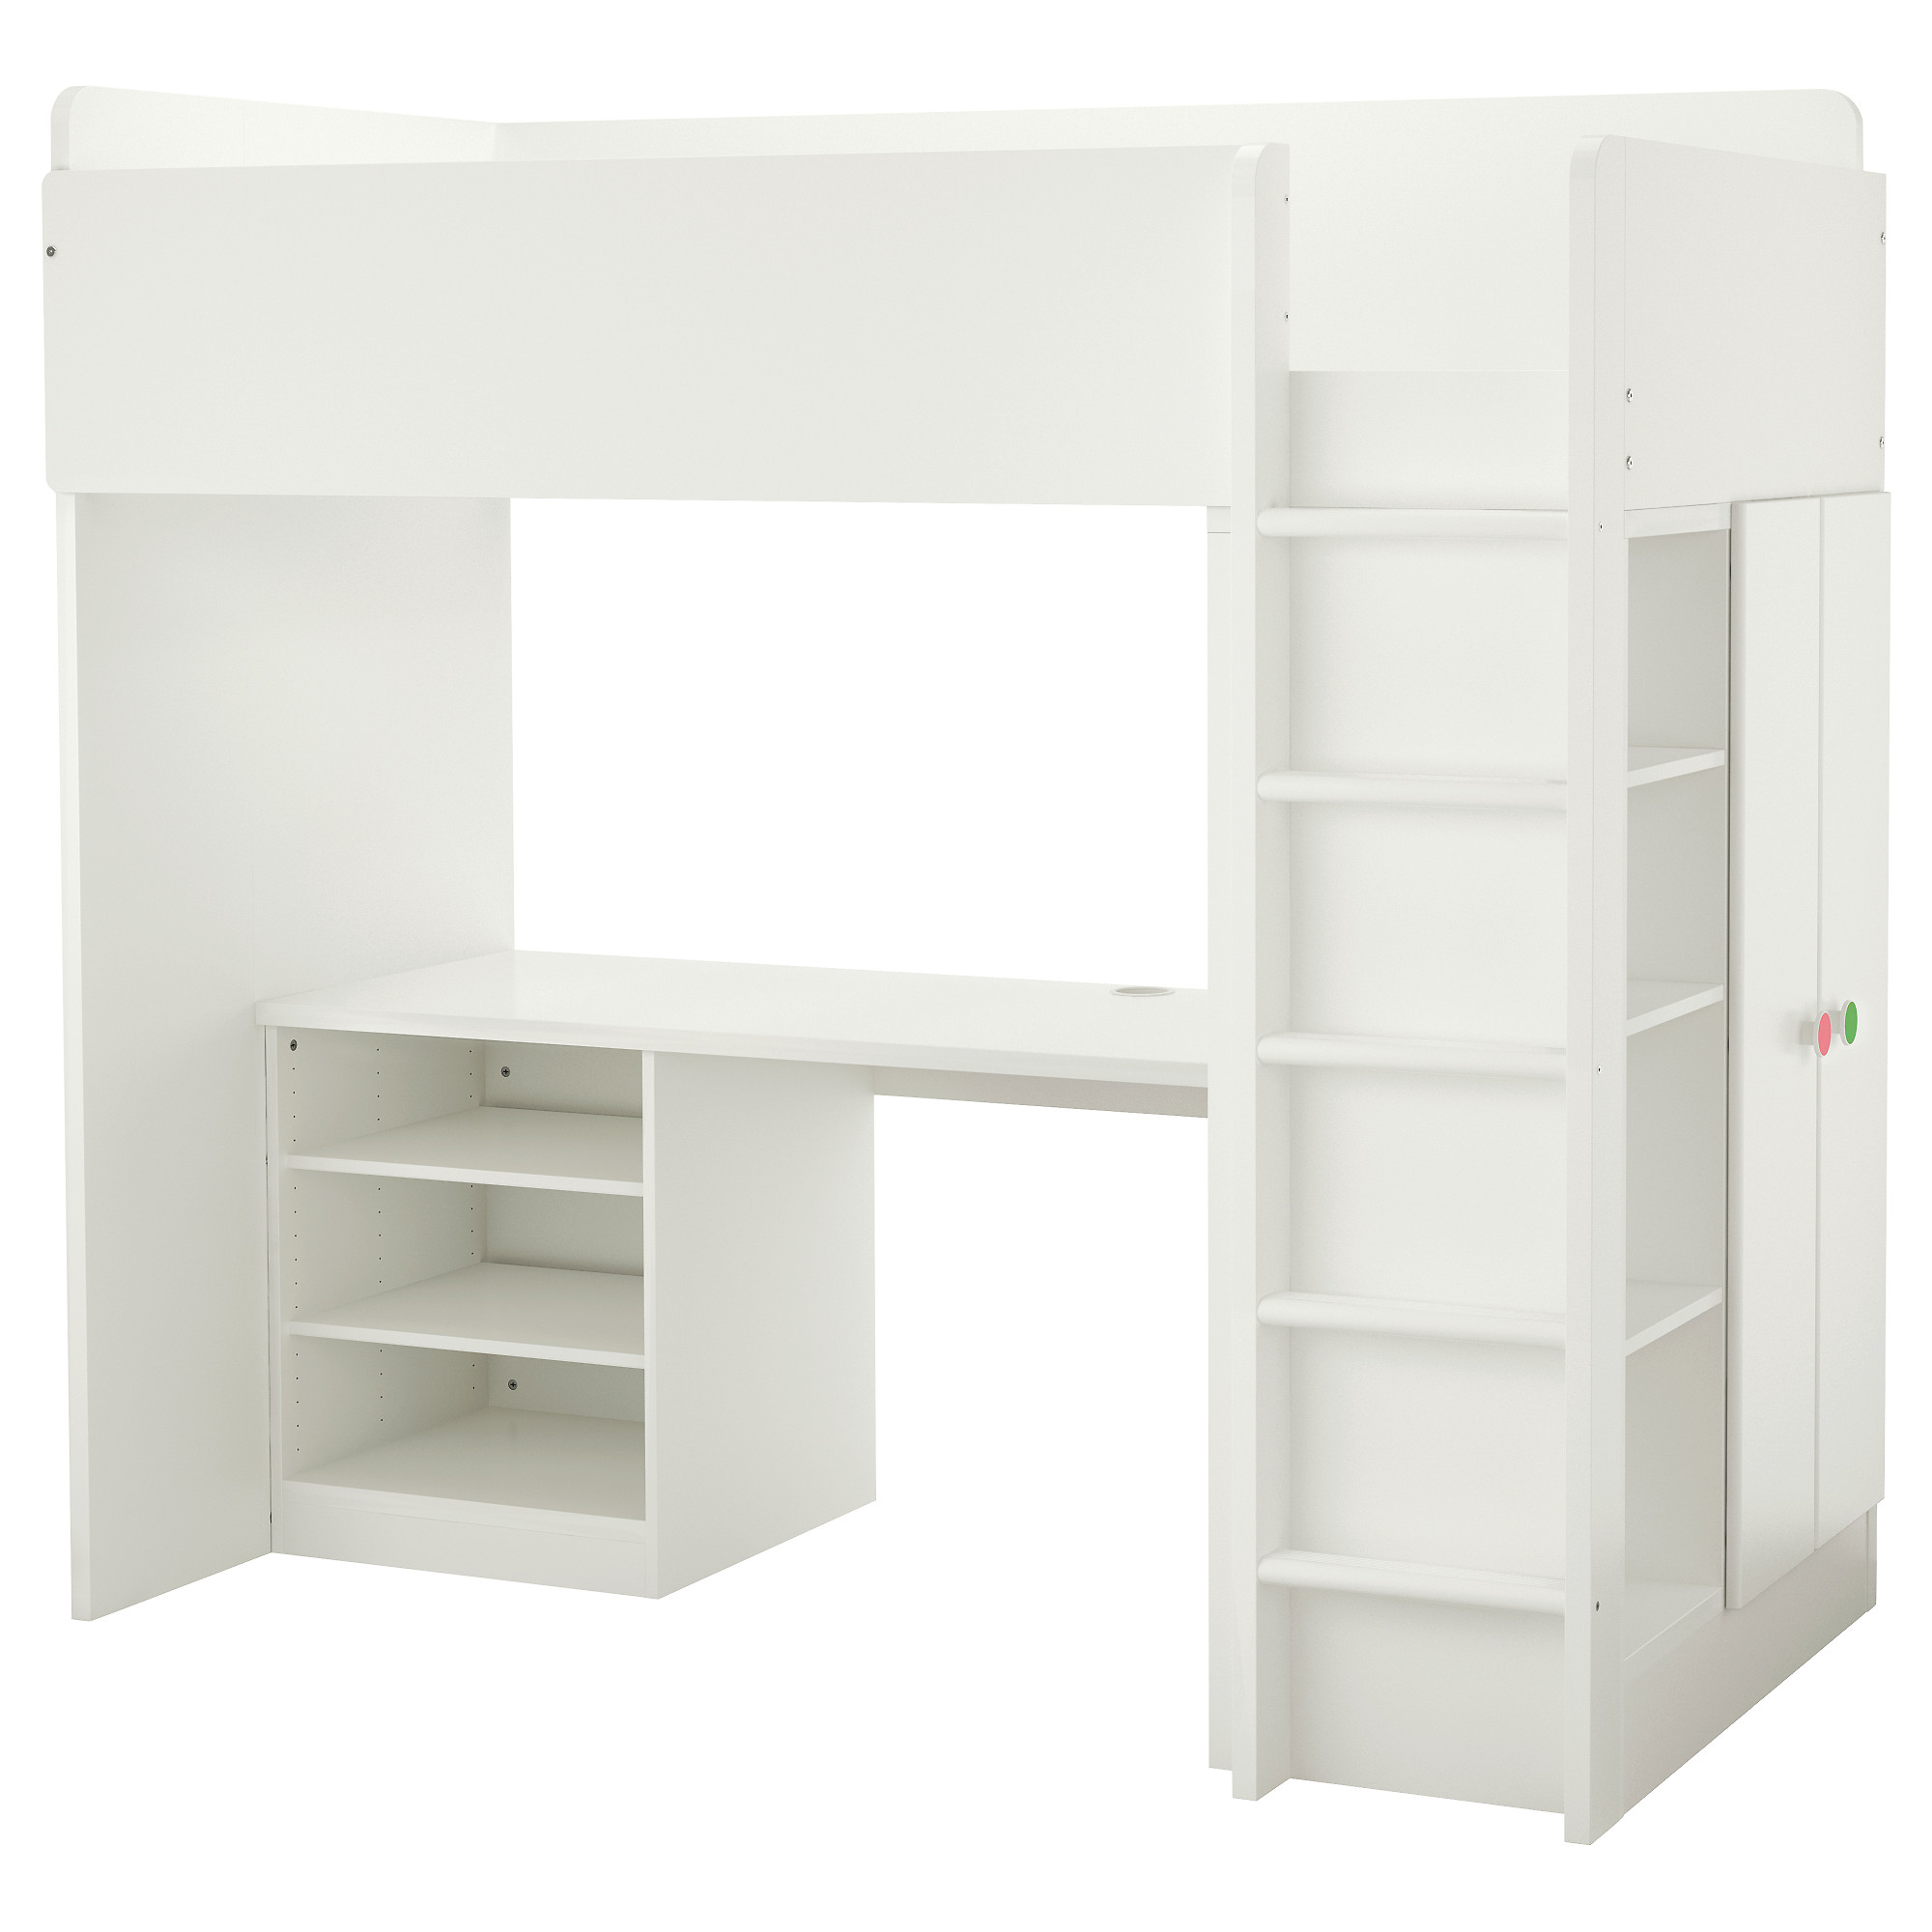 Bunk bed with desk and sofa bed - Stuva F Lja Loft Bed With 2 Shelves 2 Doors White Height 76